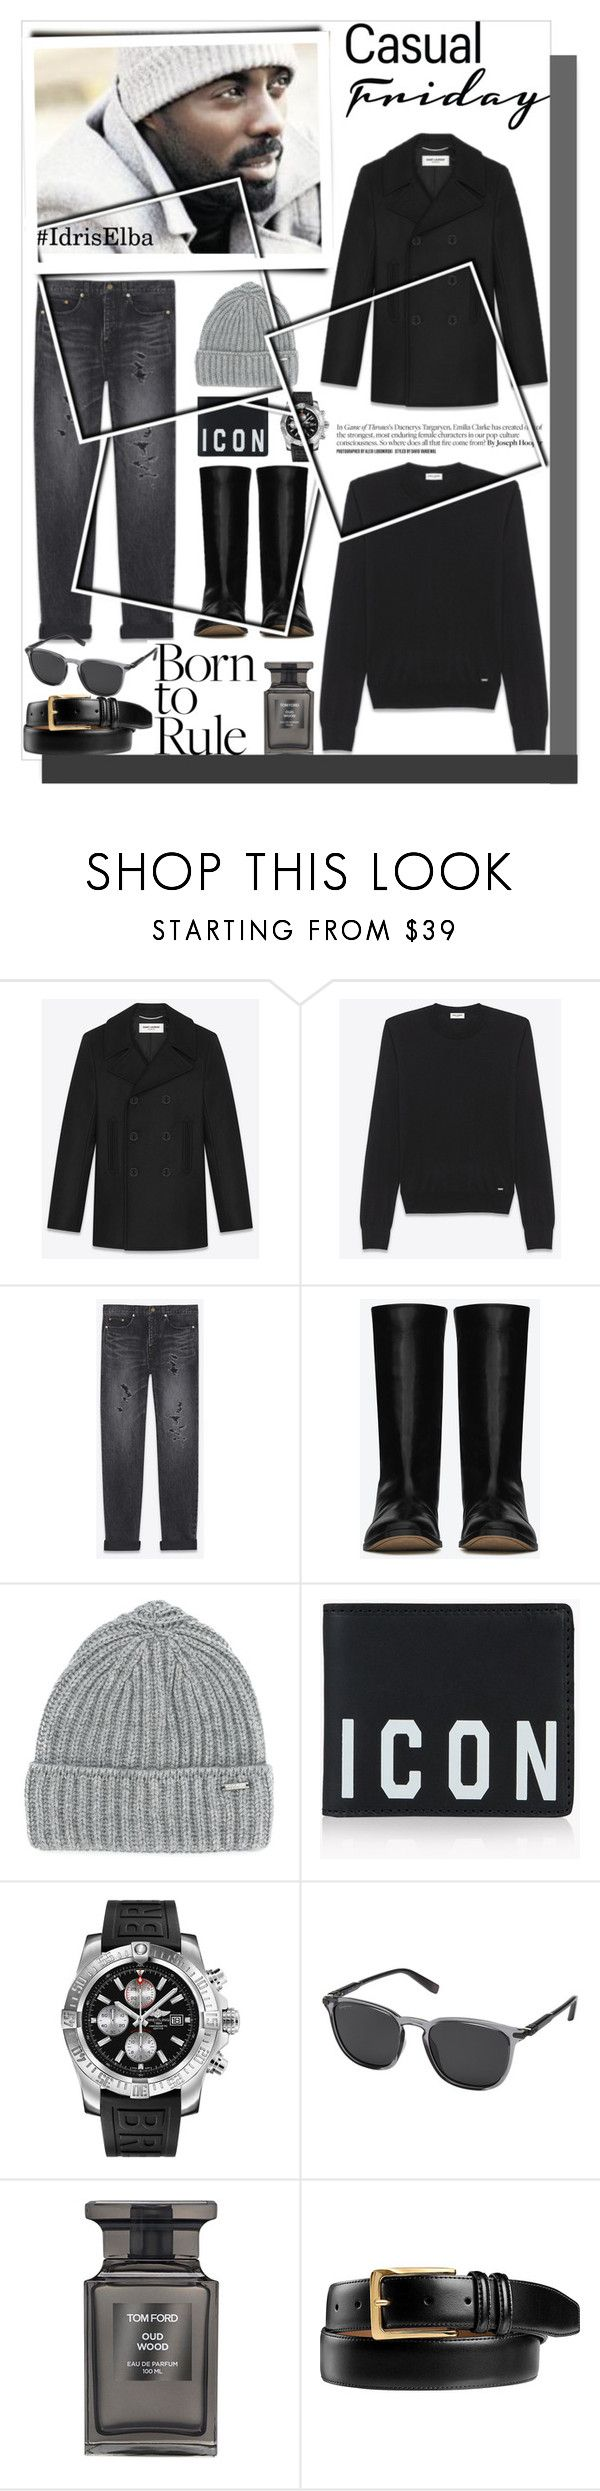 """Leather Boots! ! Created by alves-nogueira."" by nefertiti1373 on Polyvore featuring Woolrich, Dsquared2, Breitling, Salvatore Ferragamo, Tom Ford, Johnston & Murphy, men's fashion, menswear, famousfaces and MenWhoLookGood"